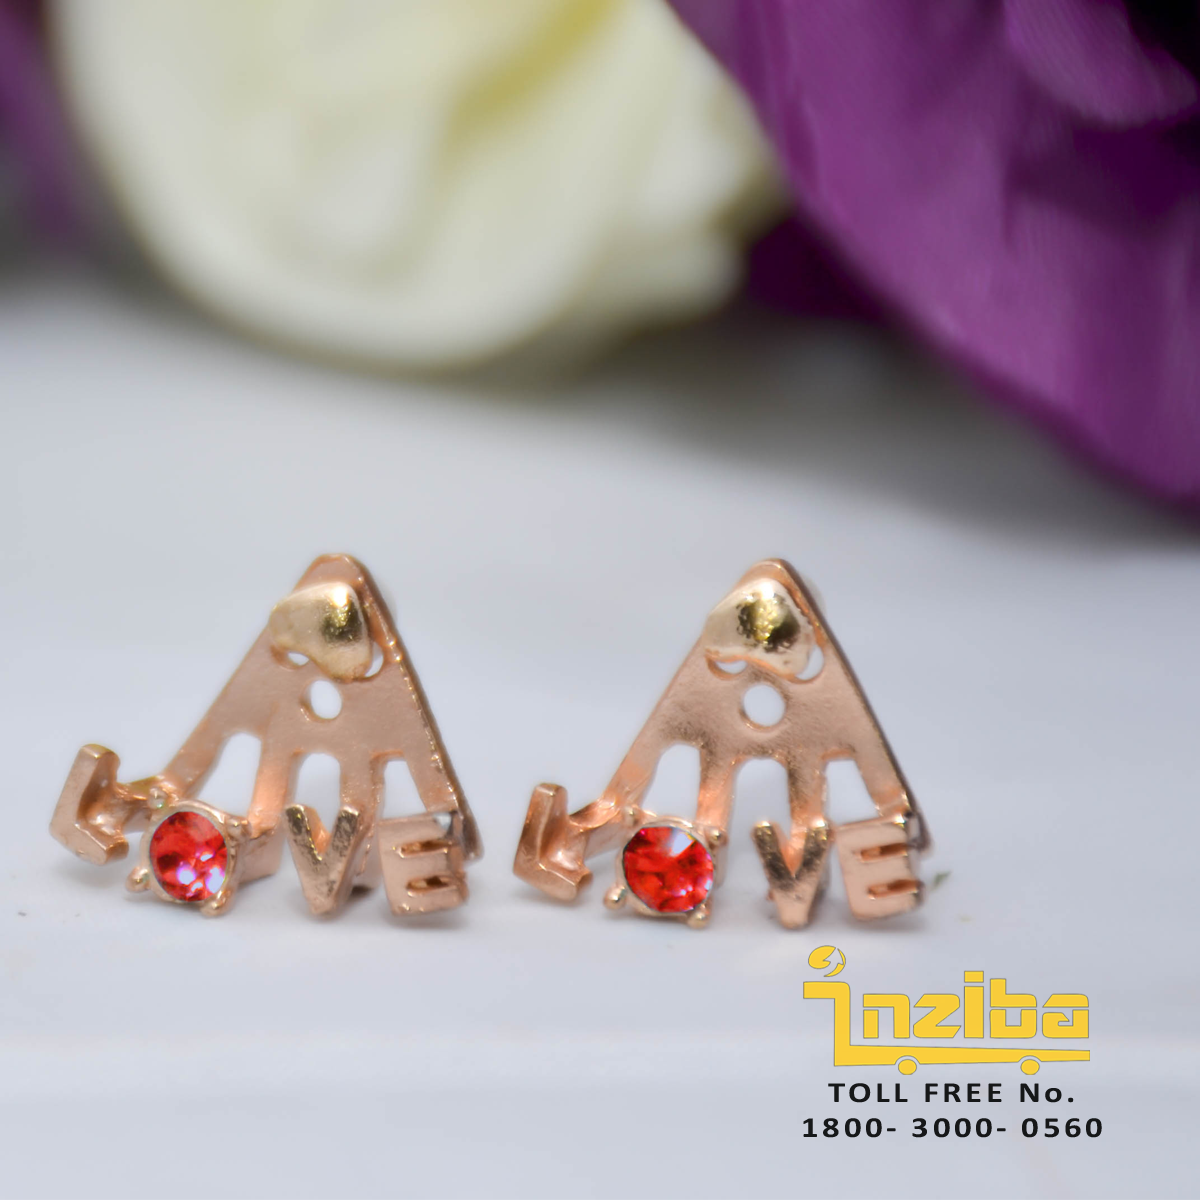 To Order visit https://www.inziba.org/promotion/shop/earrings/love-triangle/ Free COD/ Shipping in Delhi only   Already in Love with someone and fallen for this product too? oops! Worry not,We won't open it to anyone. Shhhhhh. We like kidding:p .This trendy love is pocket friendly. Get it before it ditches you and becomes somebody else's possession.